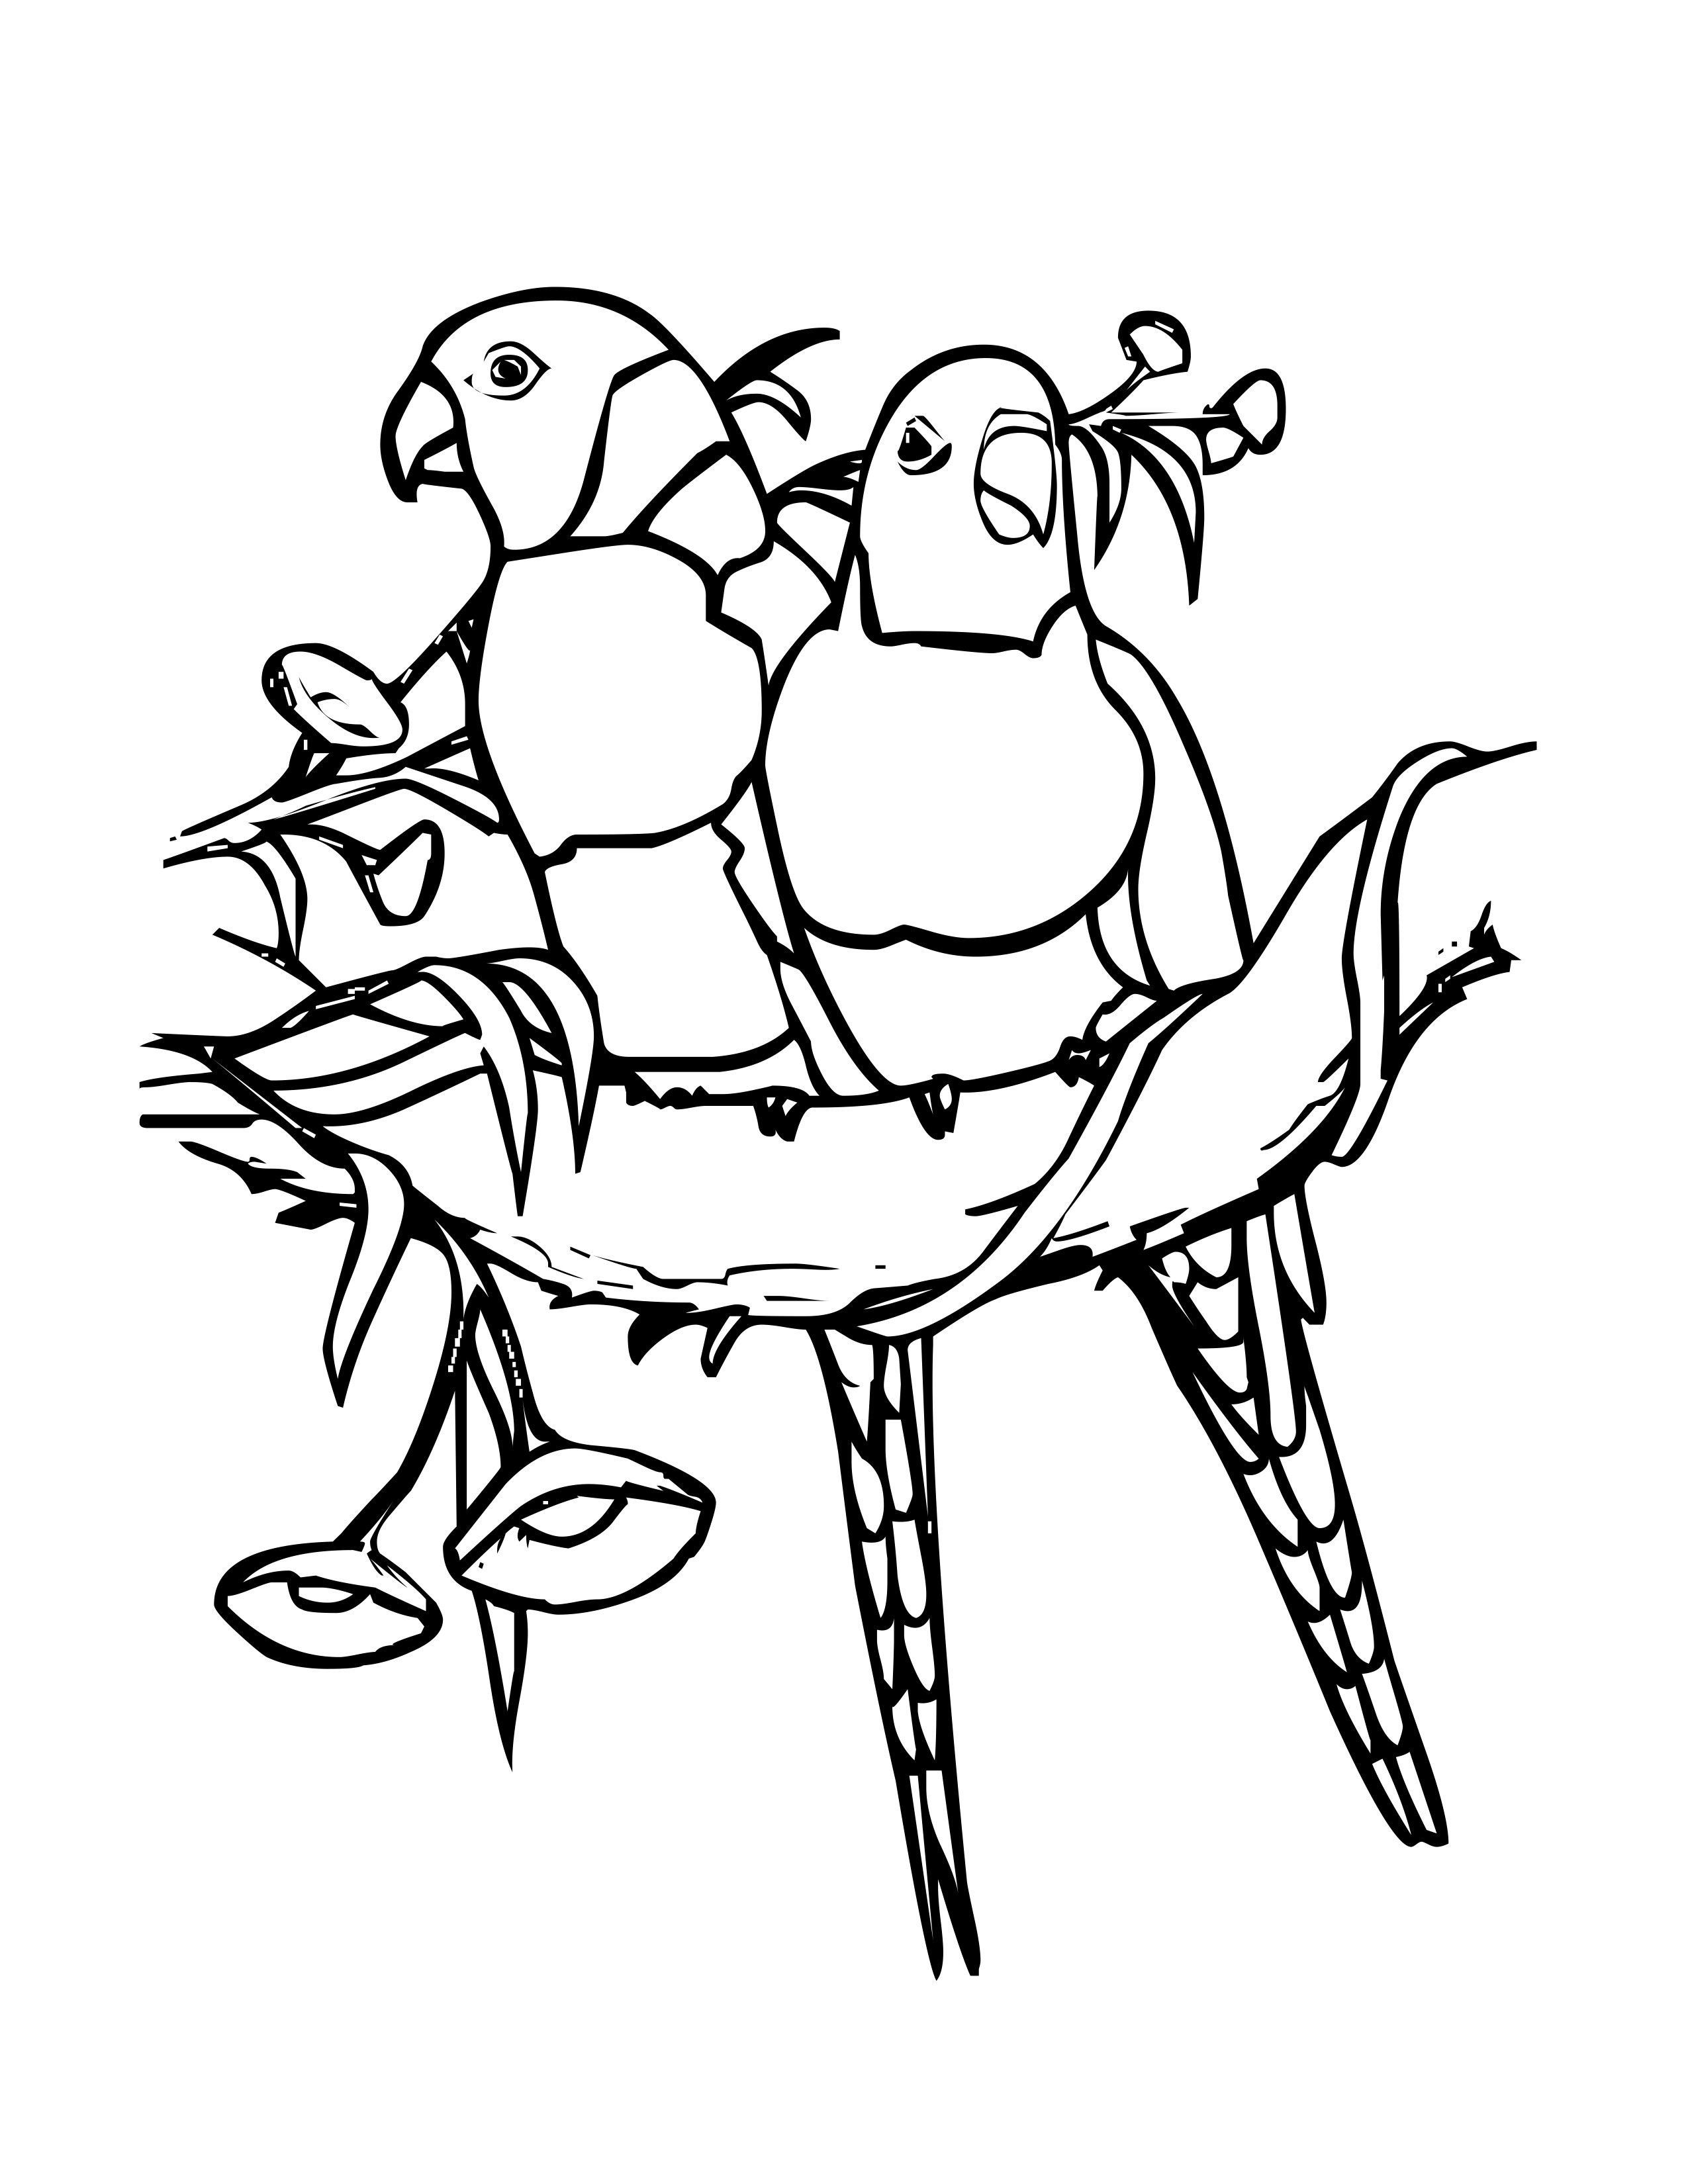 bird colouring pictures birds free to color for children birds kids coloring pages pictures colouring bird